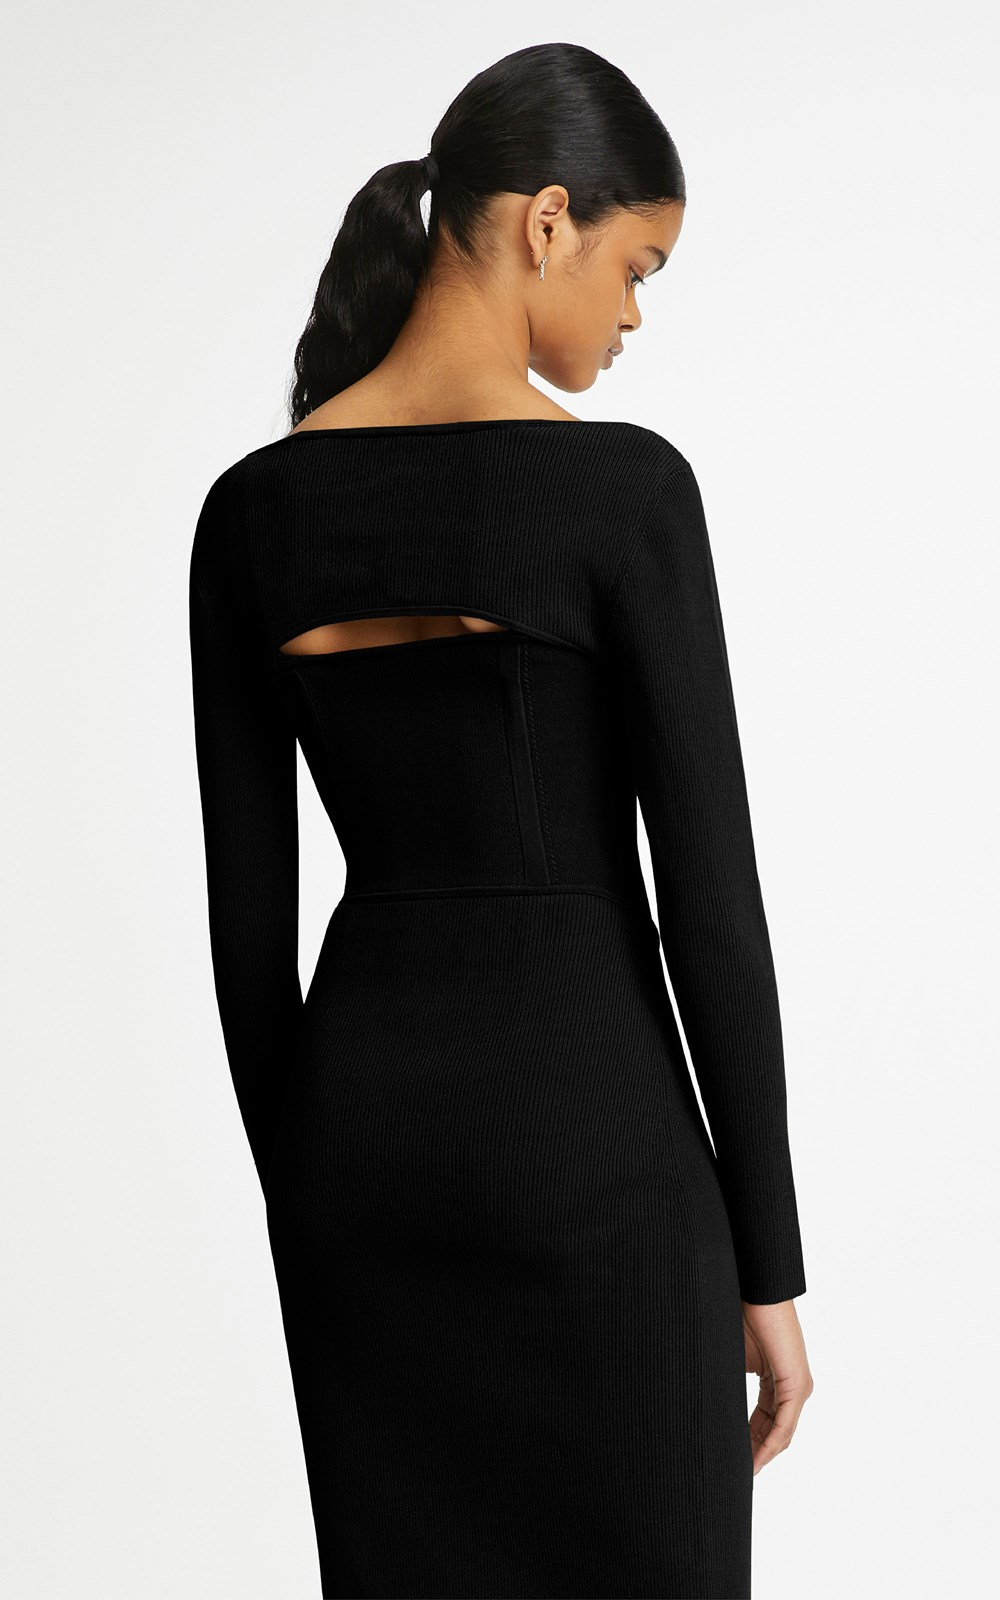 Knitwear | POINTELLE CORSET DRESS